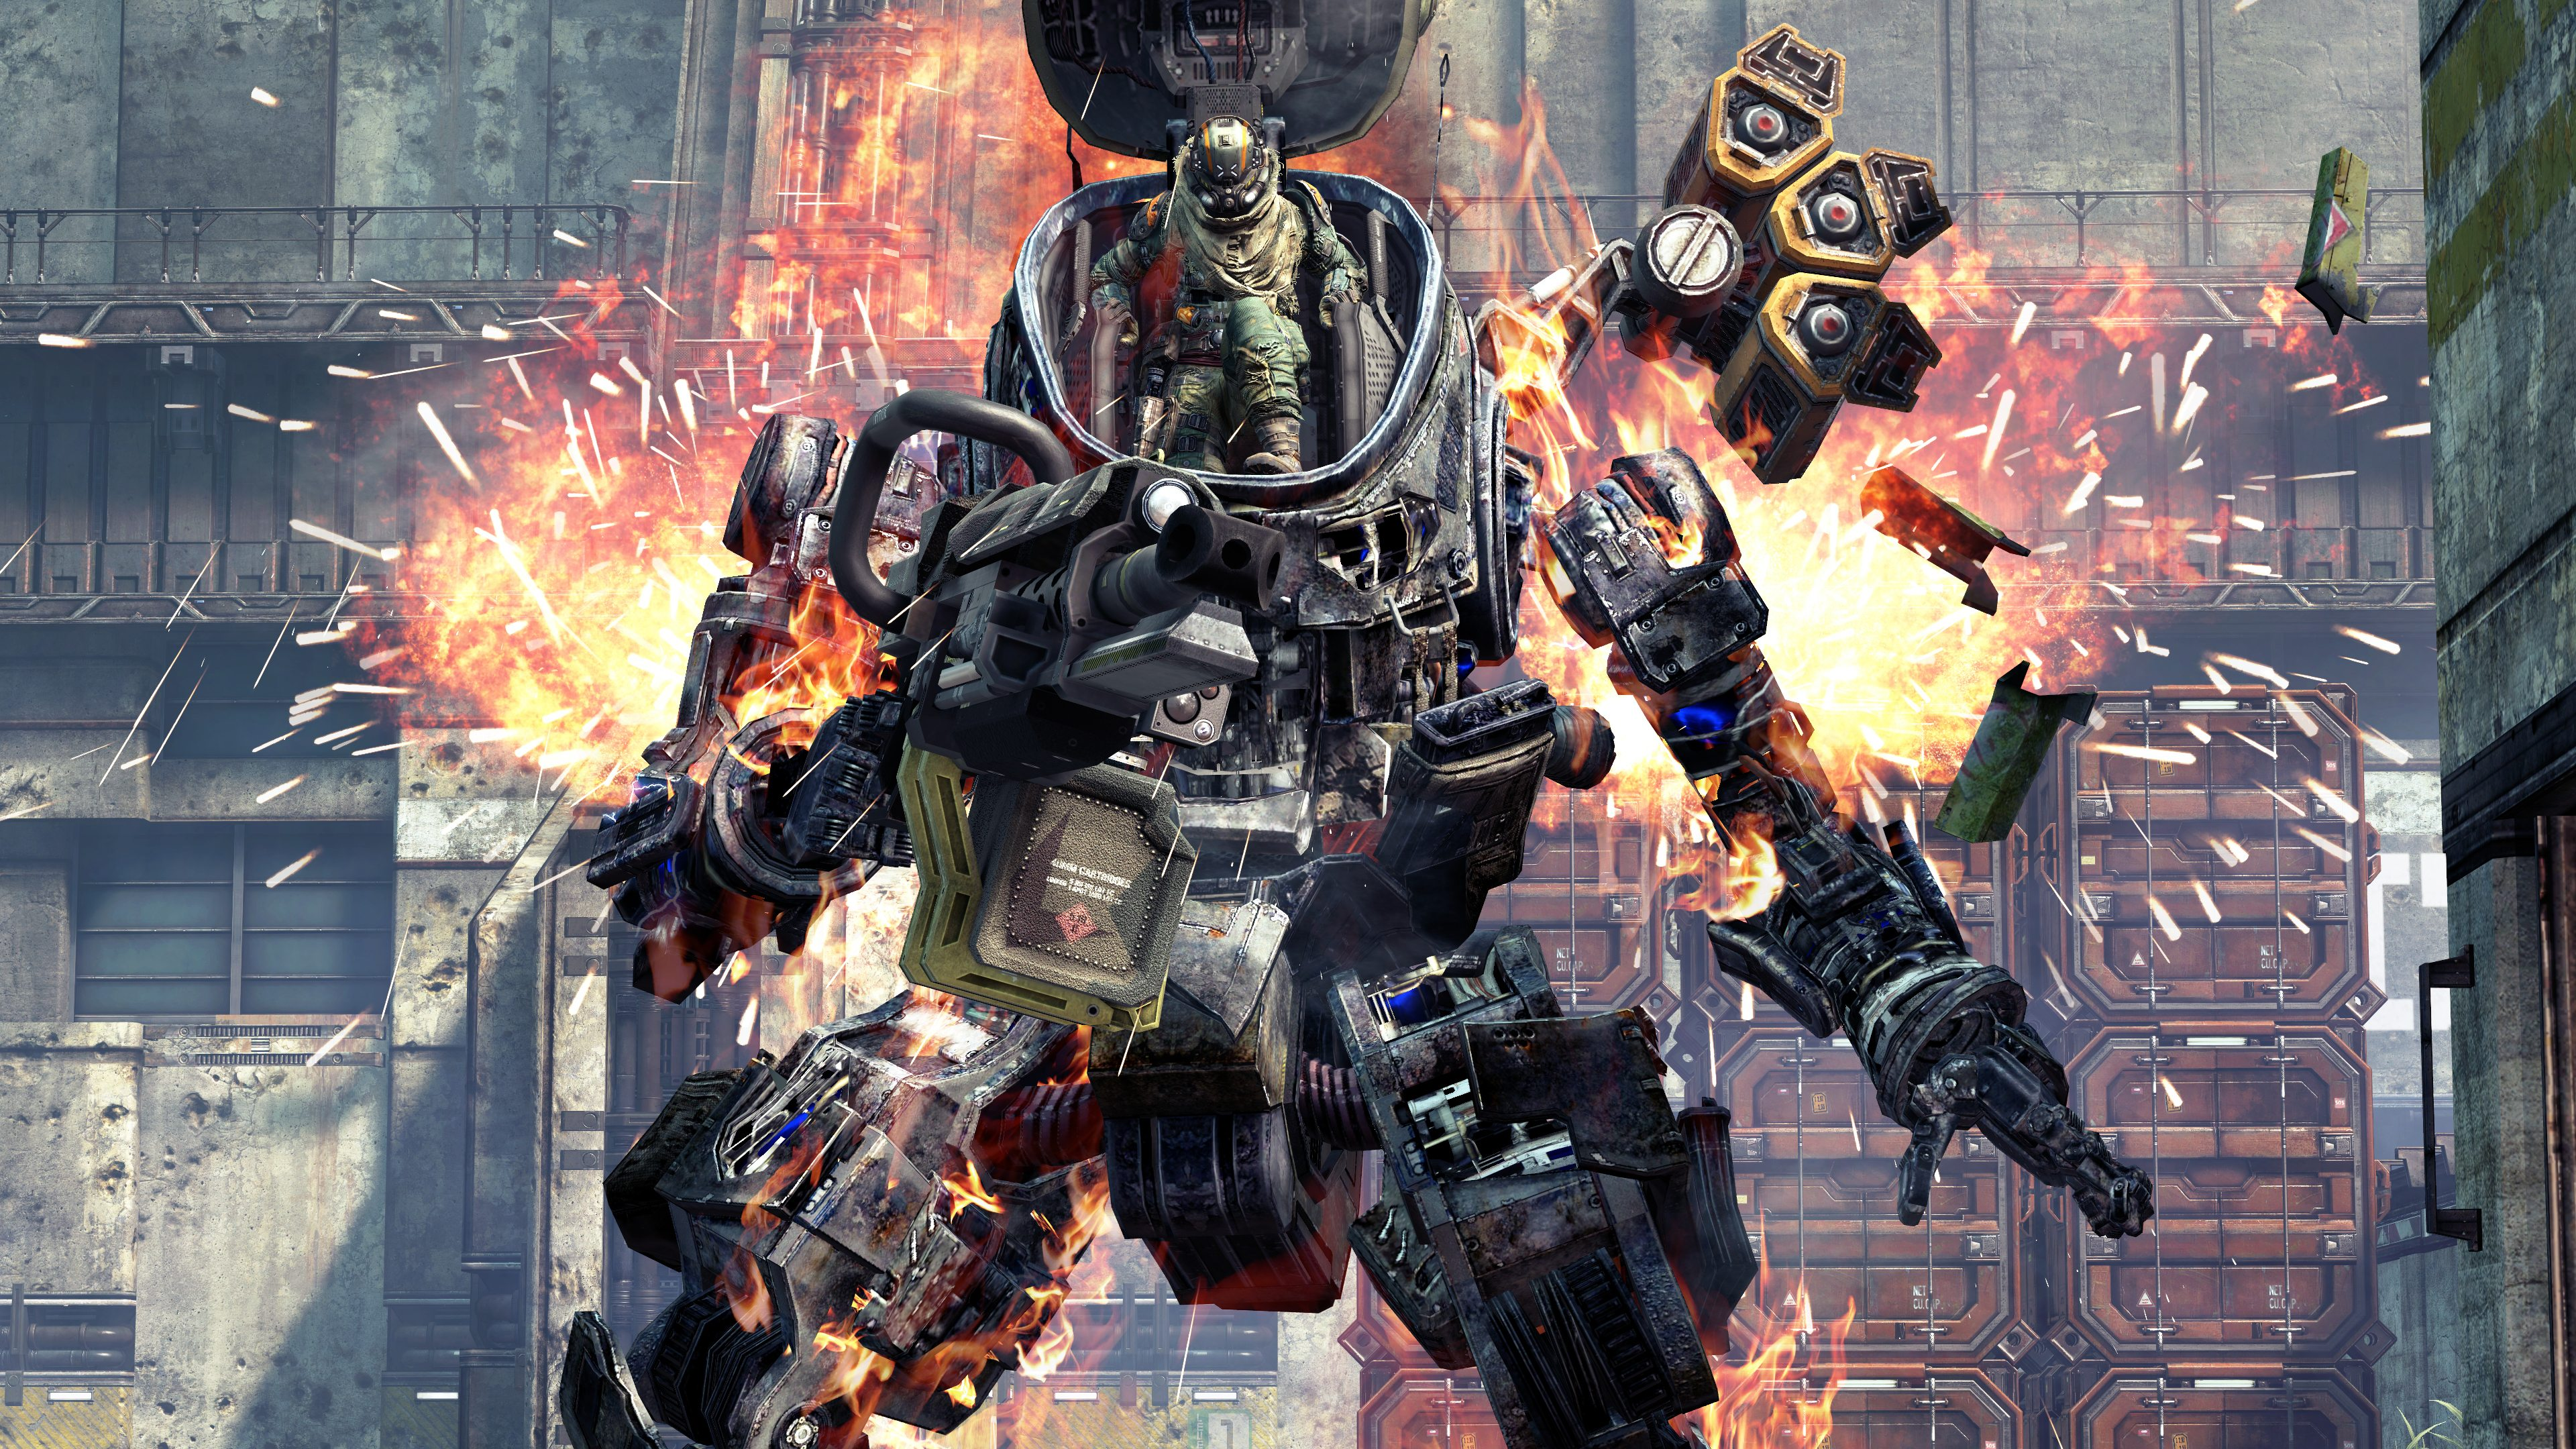 Titanfall 2 in the Works for Late 2016 or Early 2017